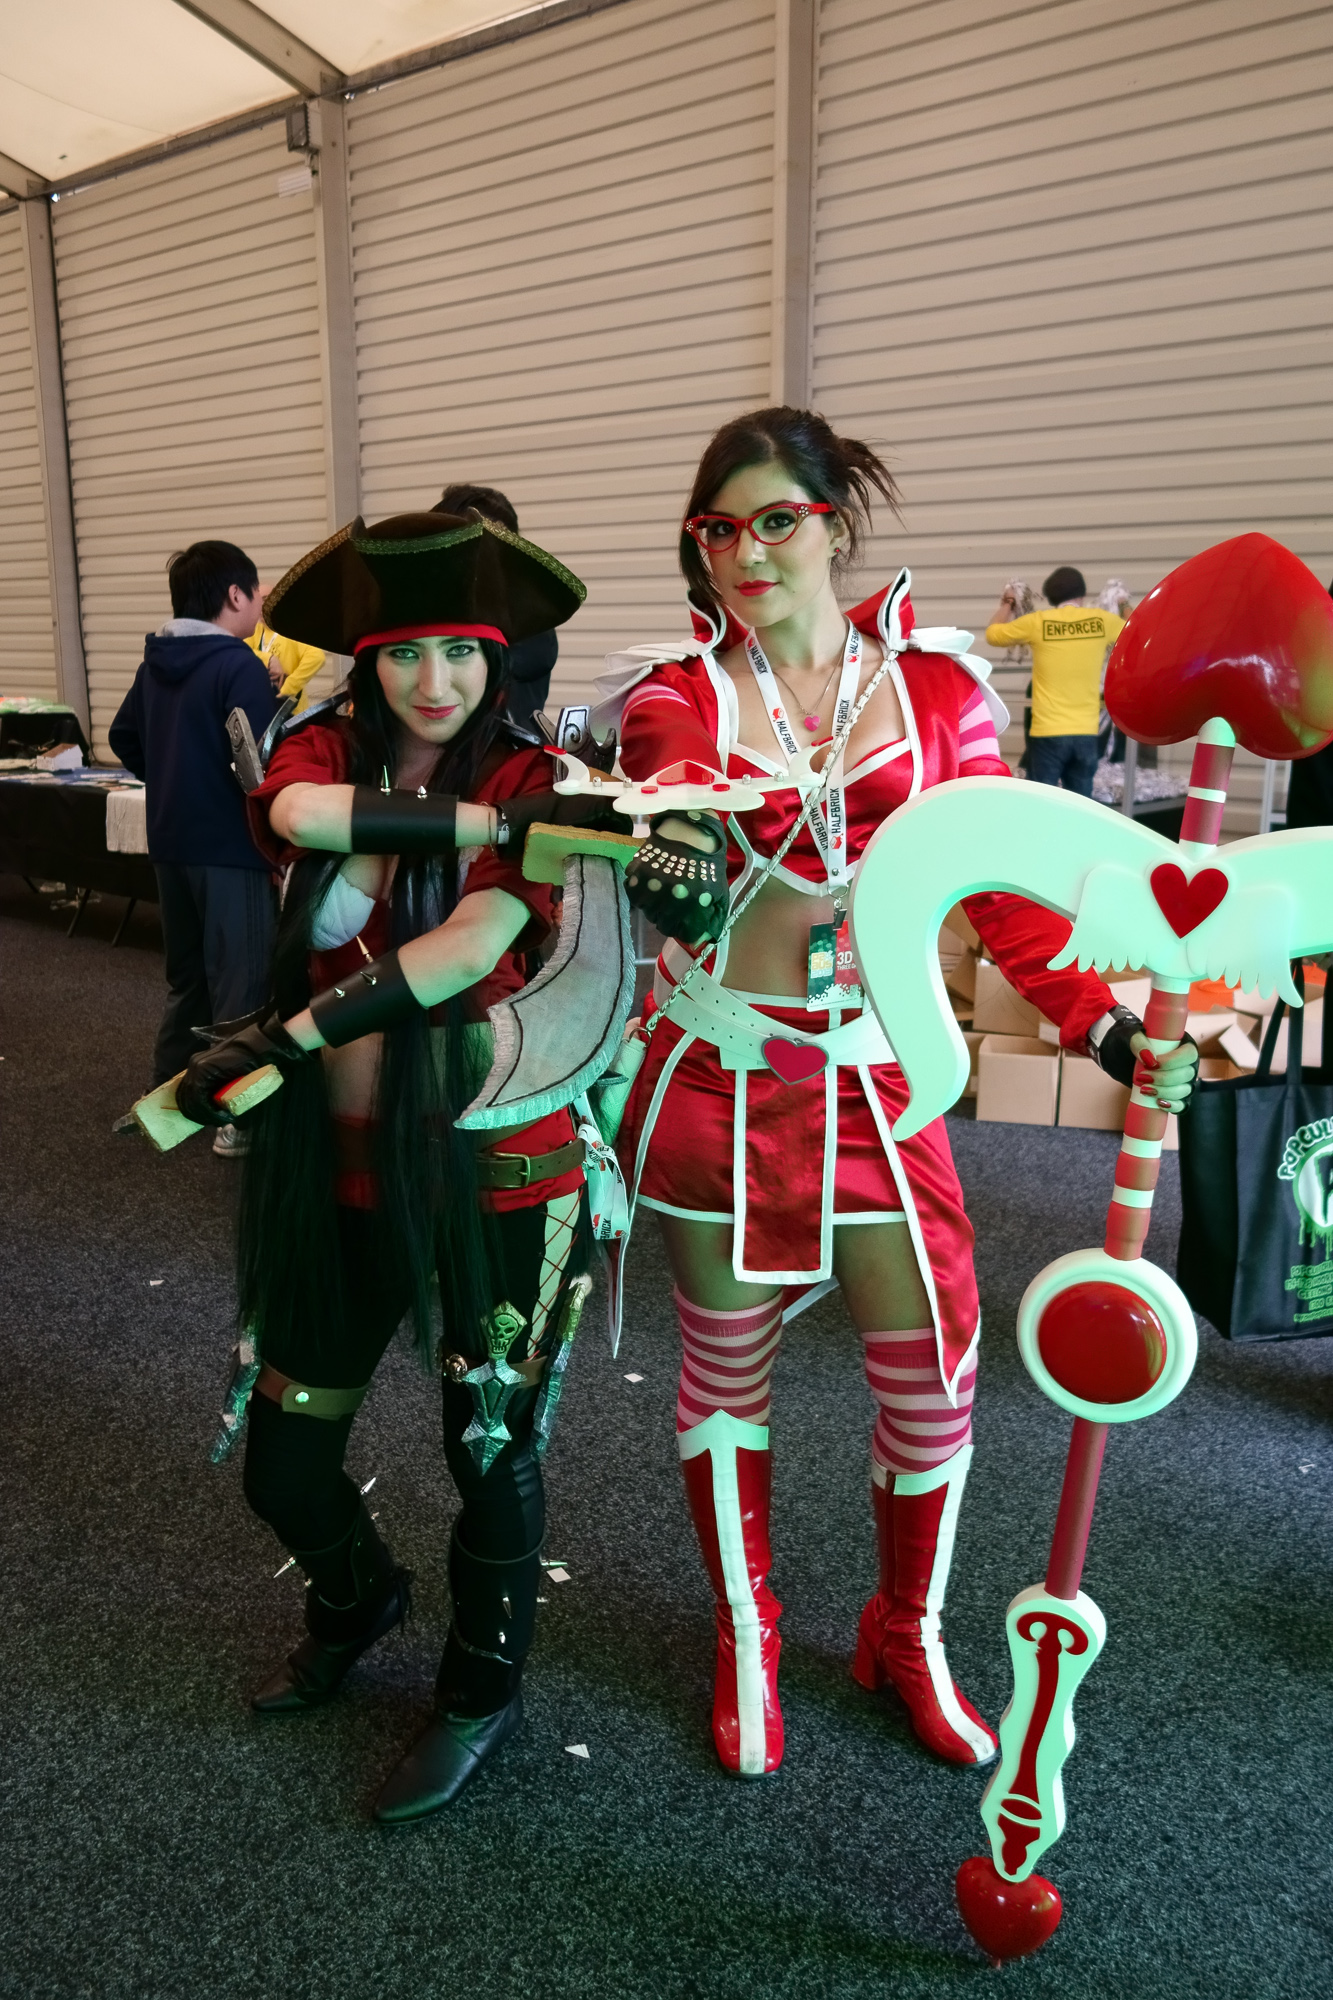 """The lady on the right is apparently """"Heartseeker Vayne"""", a League of Legends character"""